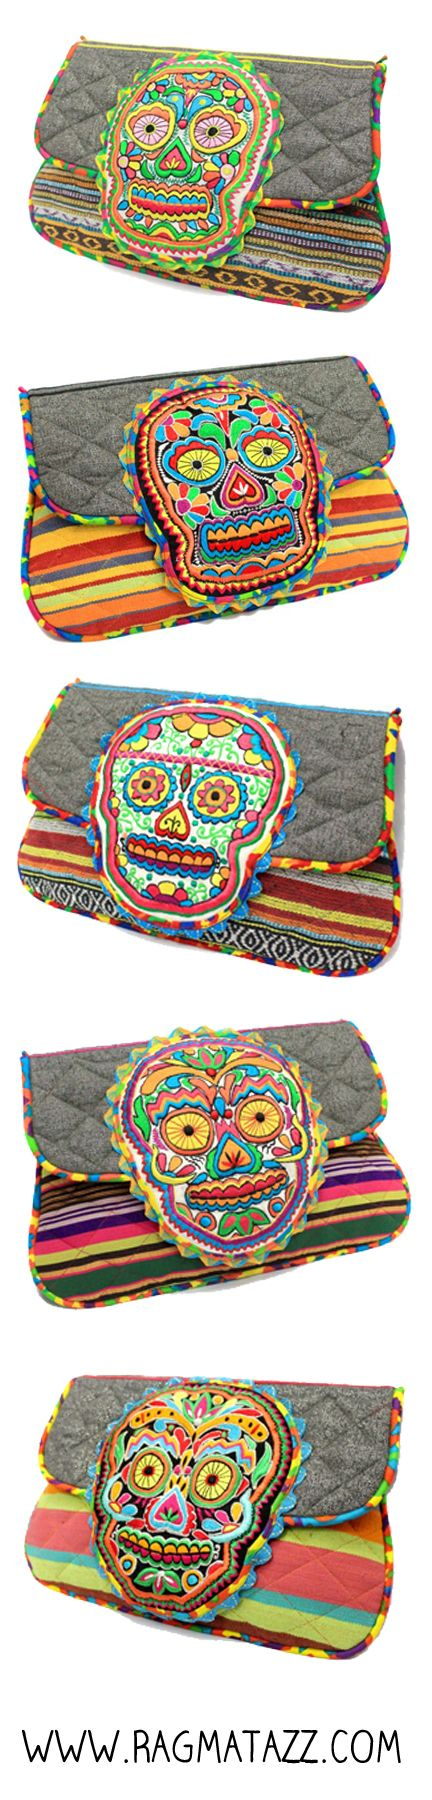 Sugar Skull Collection by Ragmatazz. Shop here: http://ragmatazz.myshopify.com/collections/all/sugar-skull-collection